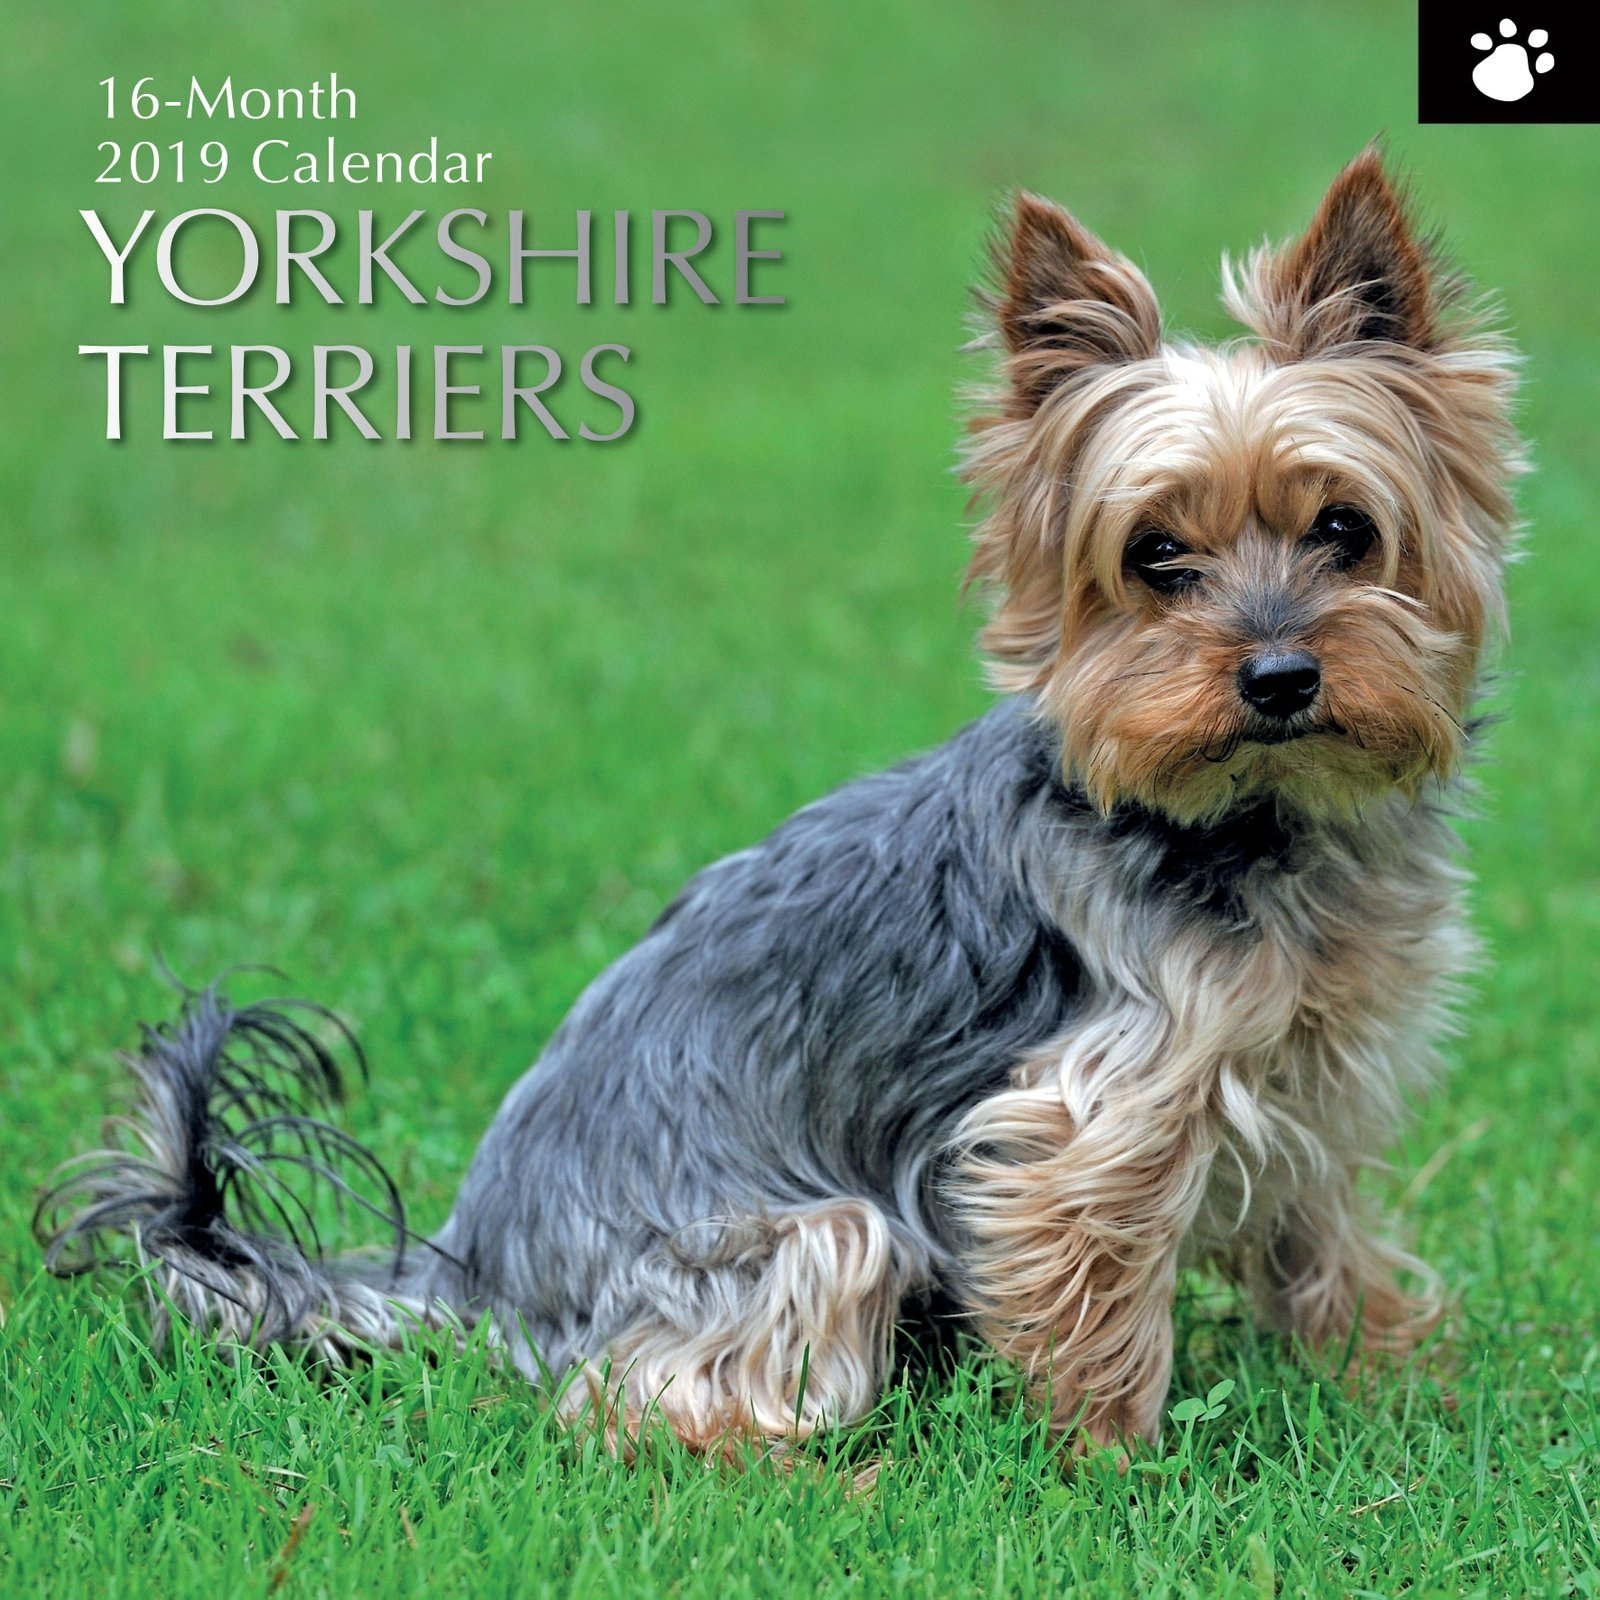 Yorkshire Terriers - 2019 Wall Calendar 16 Month Premium Square Calendar 2019 Yorkshire